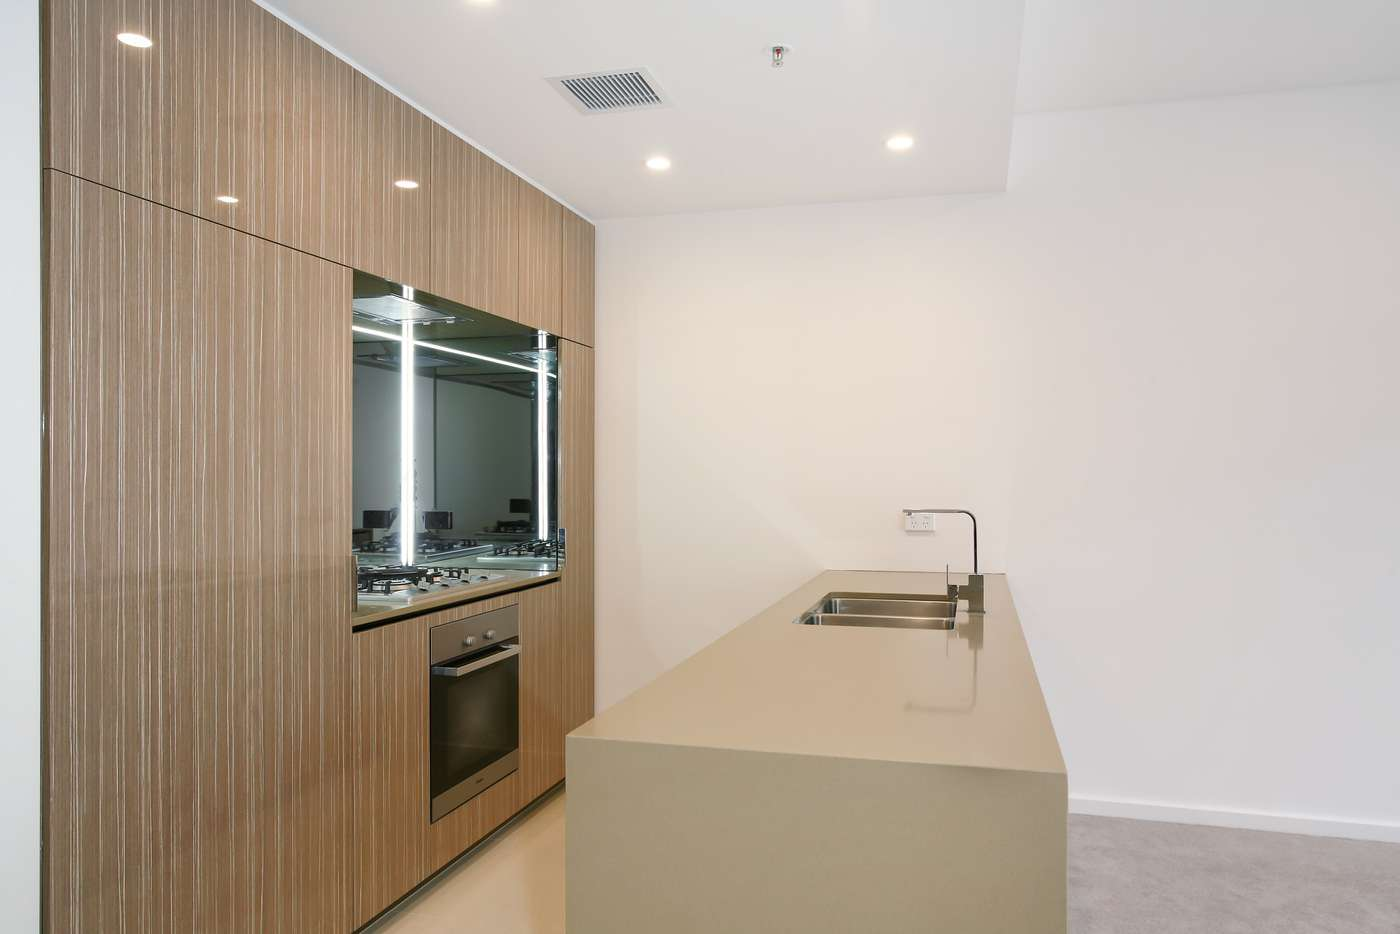 Main view of Homely apartment listing, 1105/3 George Julius Avenue, Zetland NSW 2017